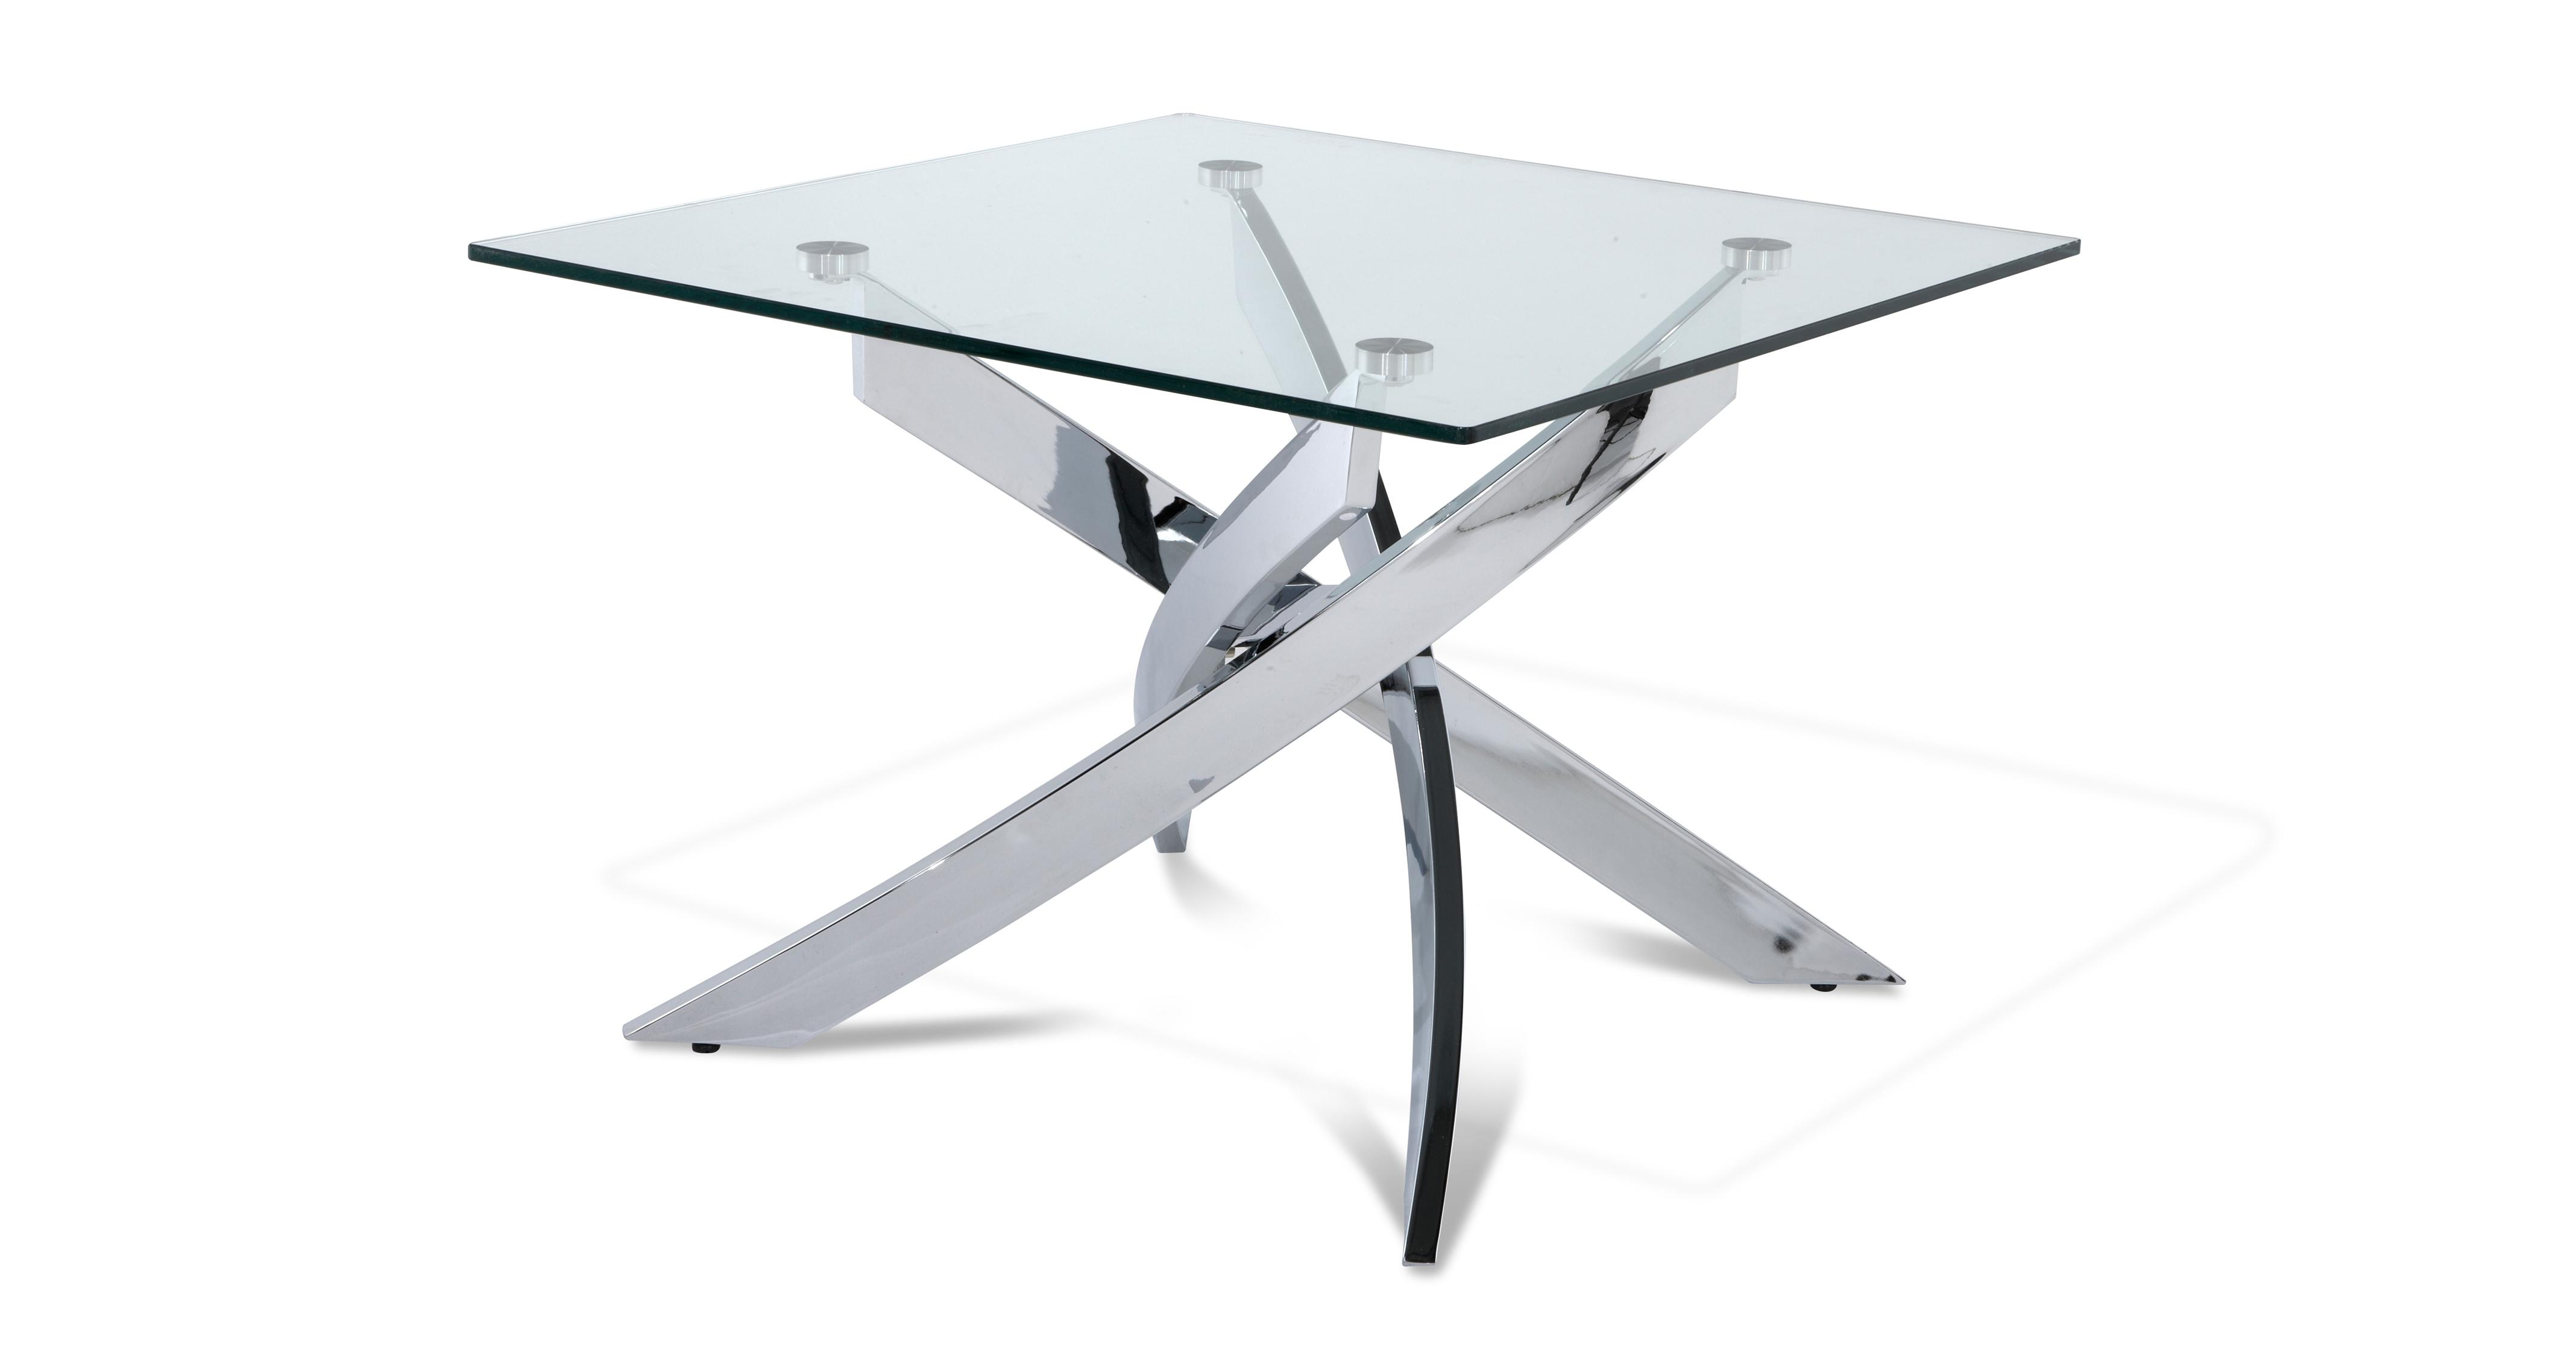 Blade lamp table dfs for Lamp table dfs